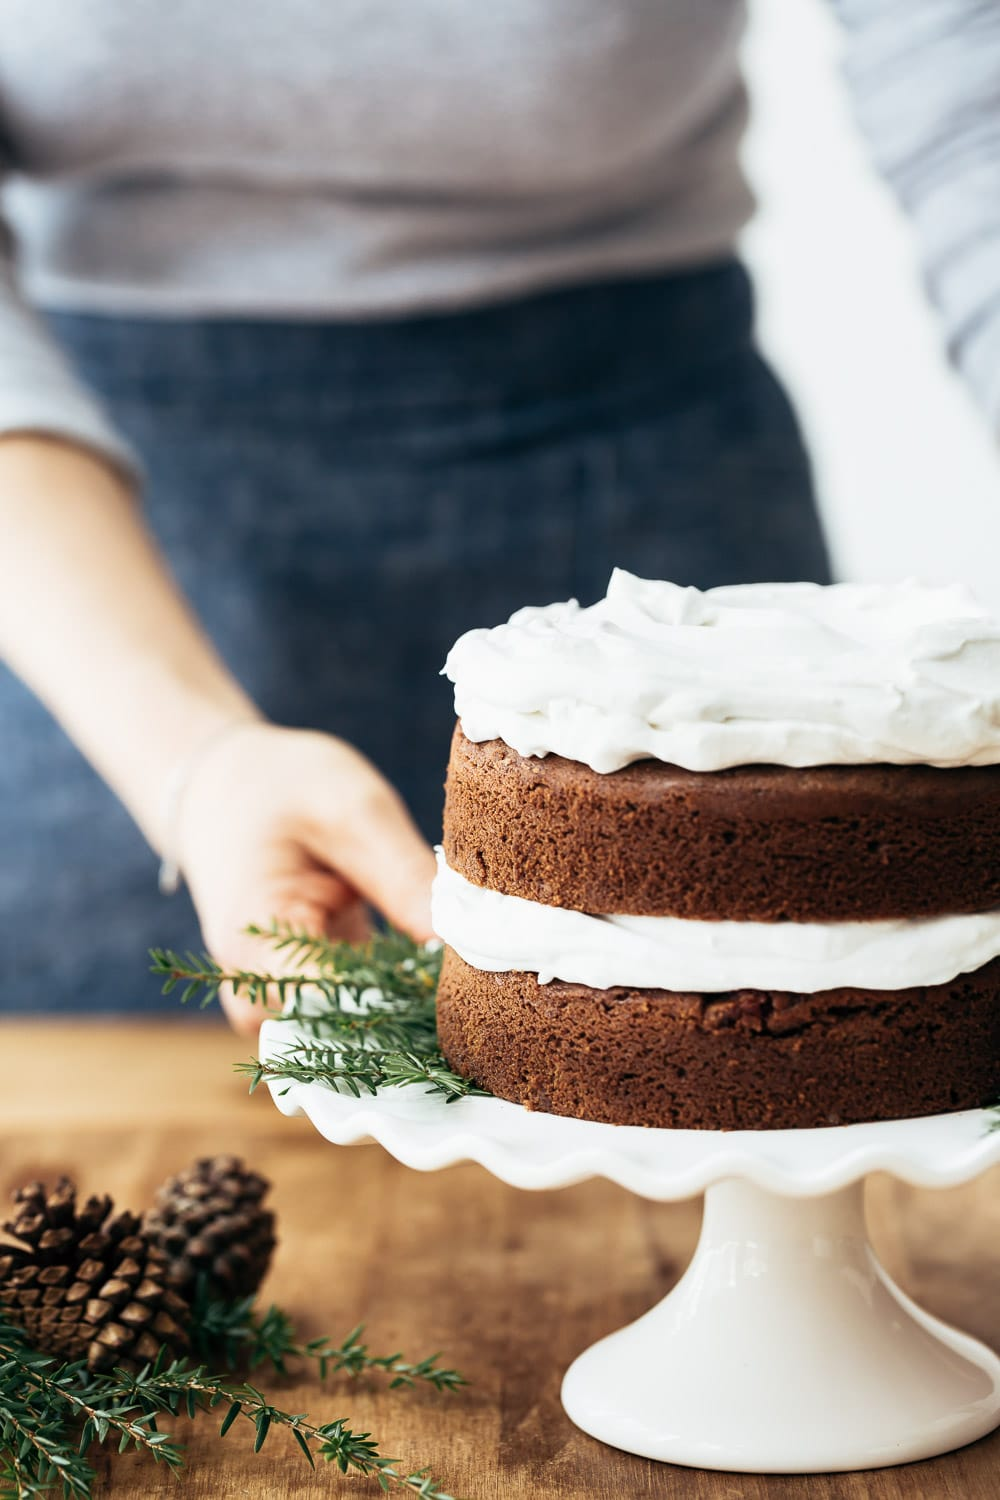 A woman is photographed from the front view as she is getting ready to garnish a Gluten Free Gingerbread Cake with cranberry topping.